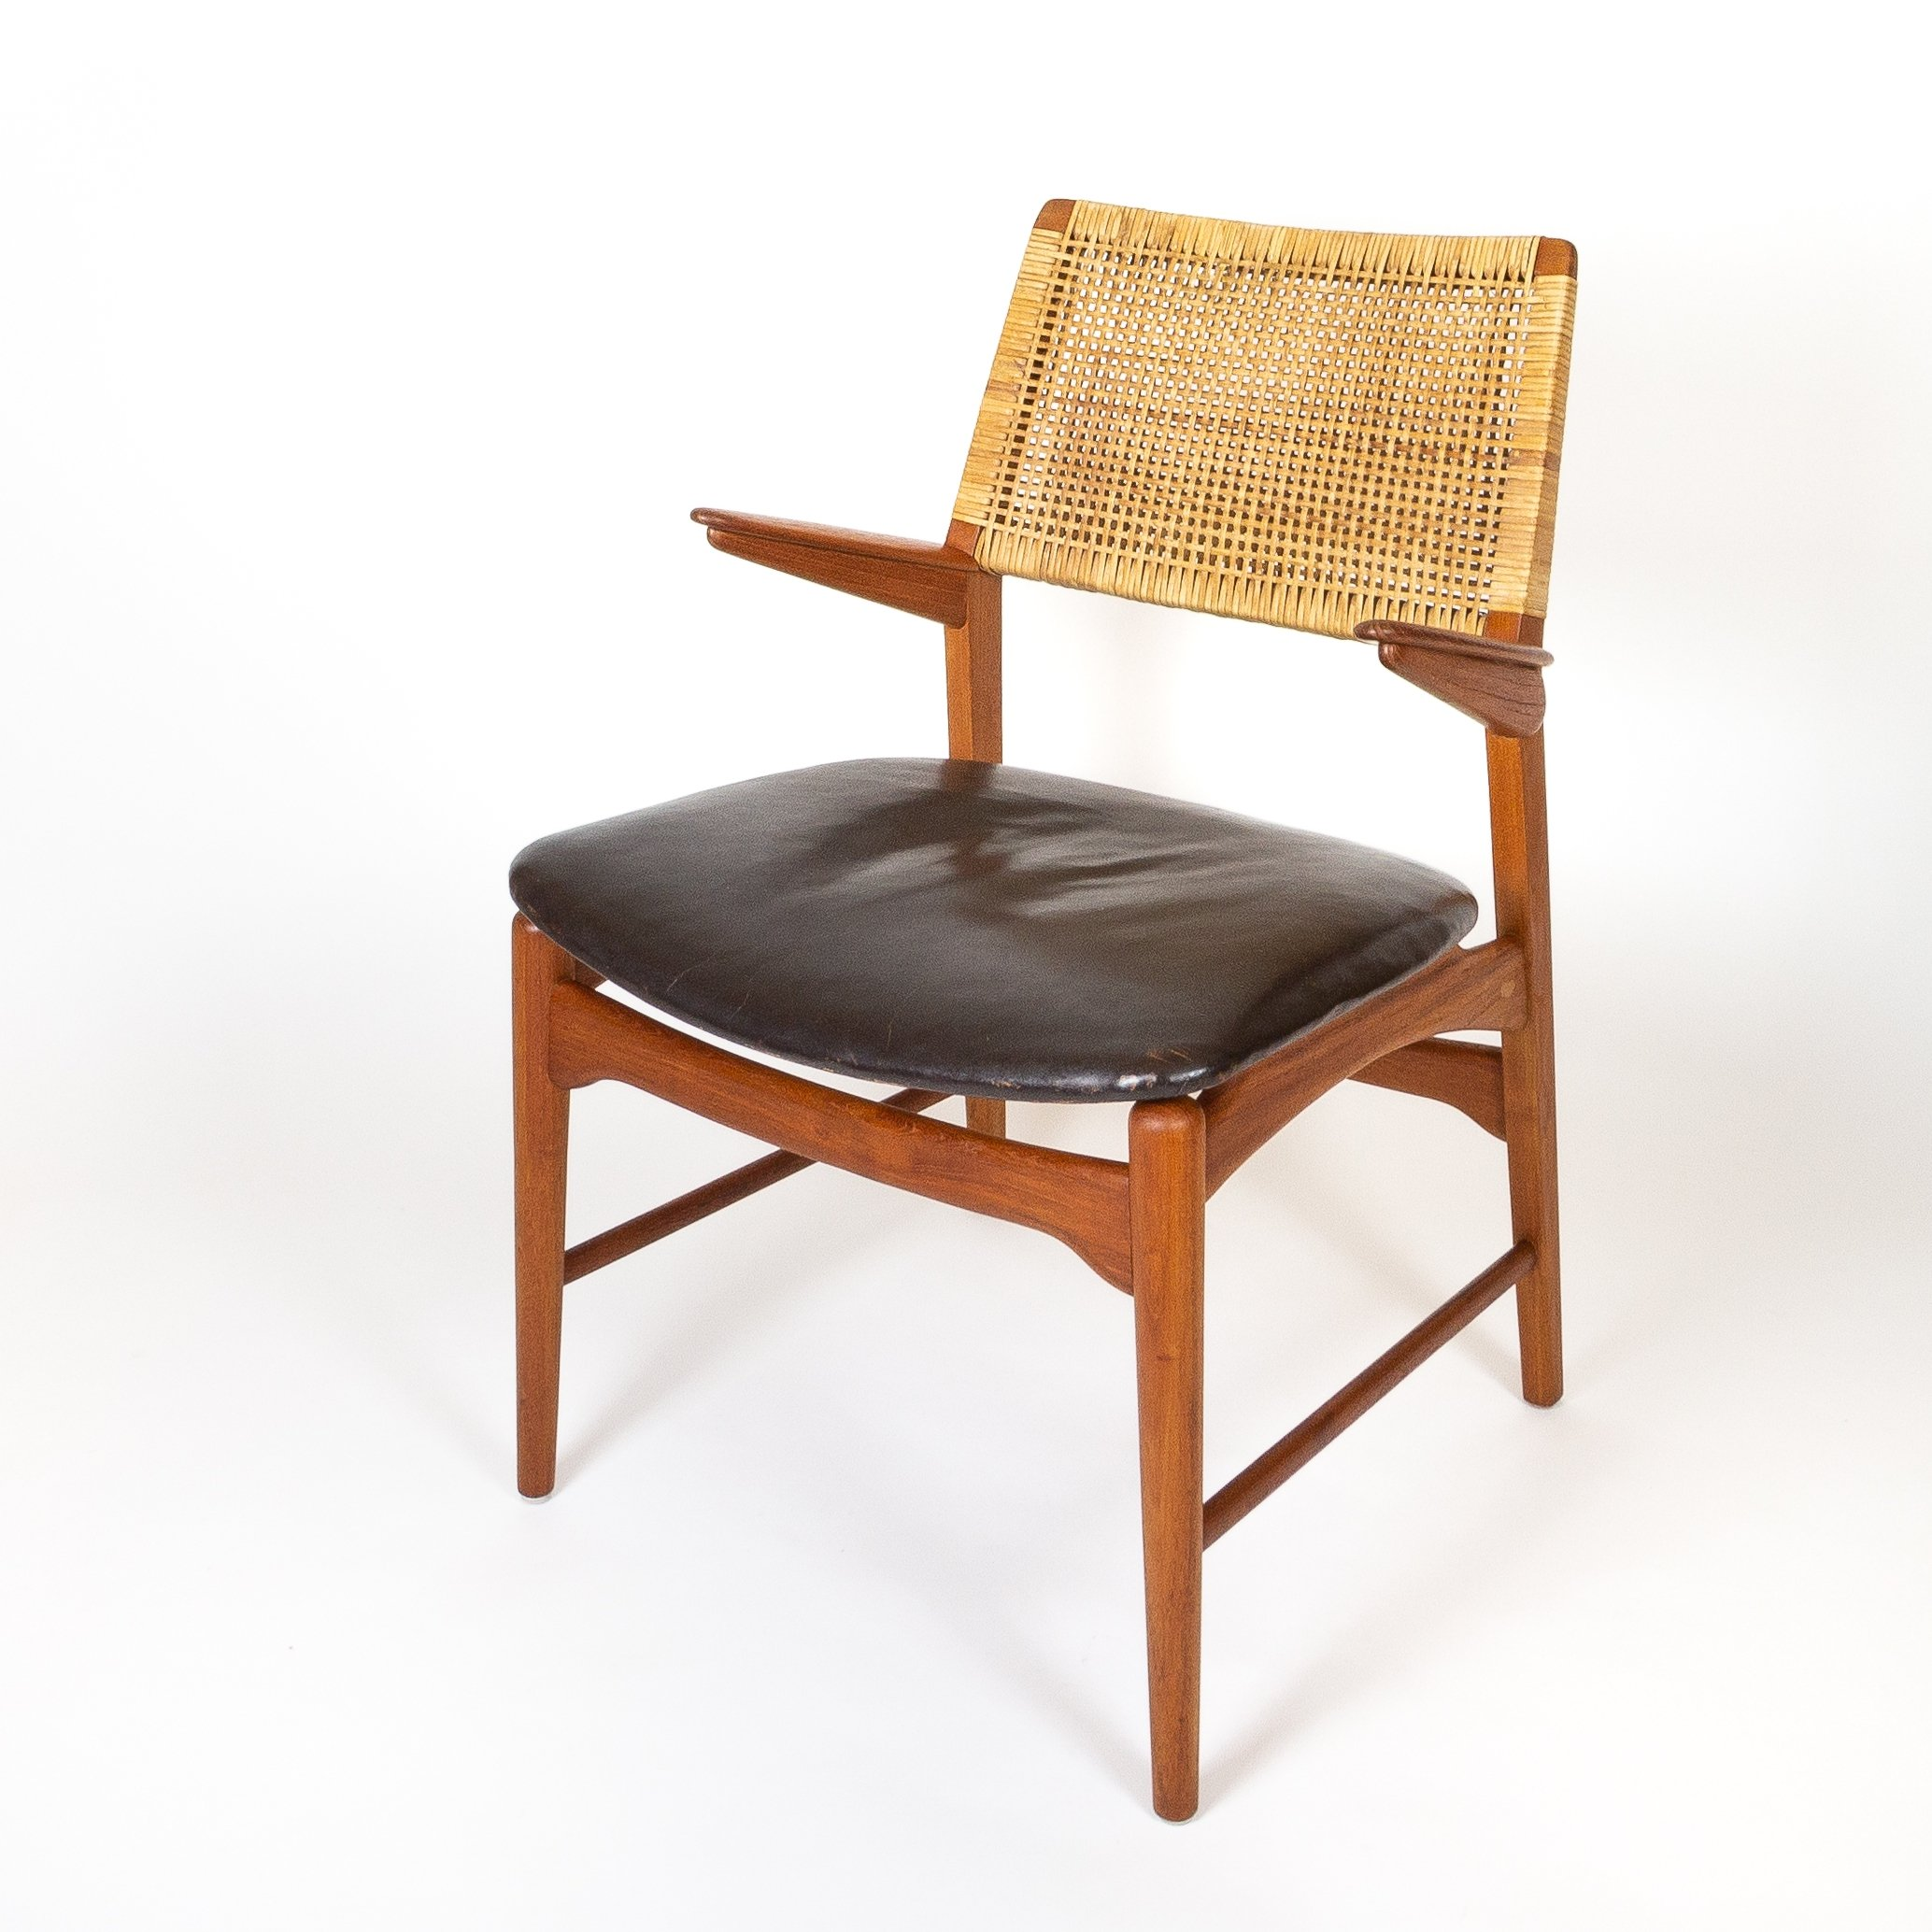 Cool Teak Leather Cane Model 48 Armchair By E Knudsen For Andrewgaddart Wooden Chair Designs For Living Room Andrewgaddartcom